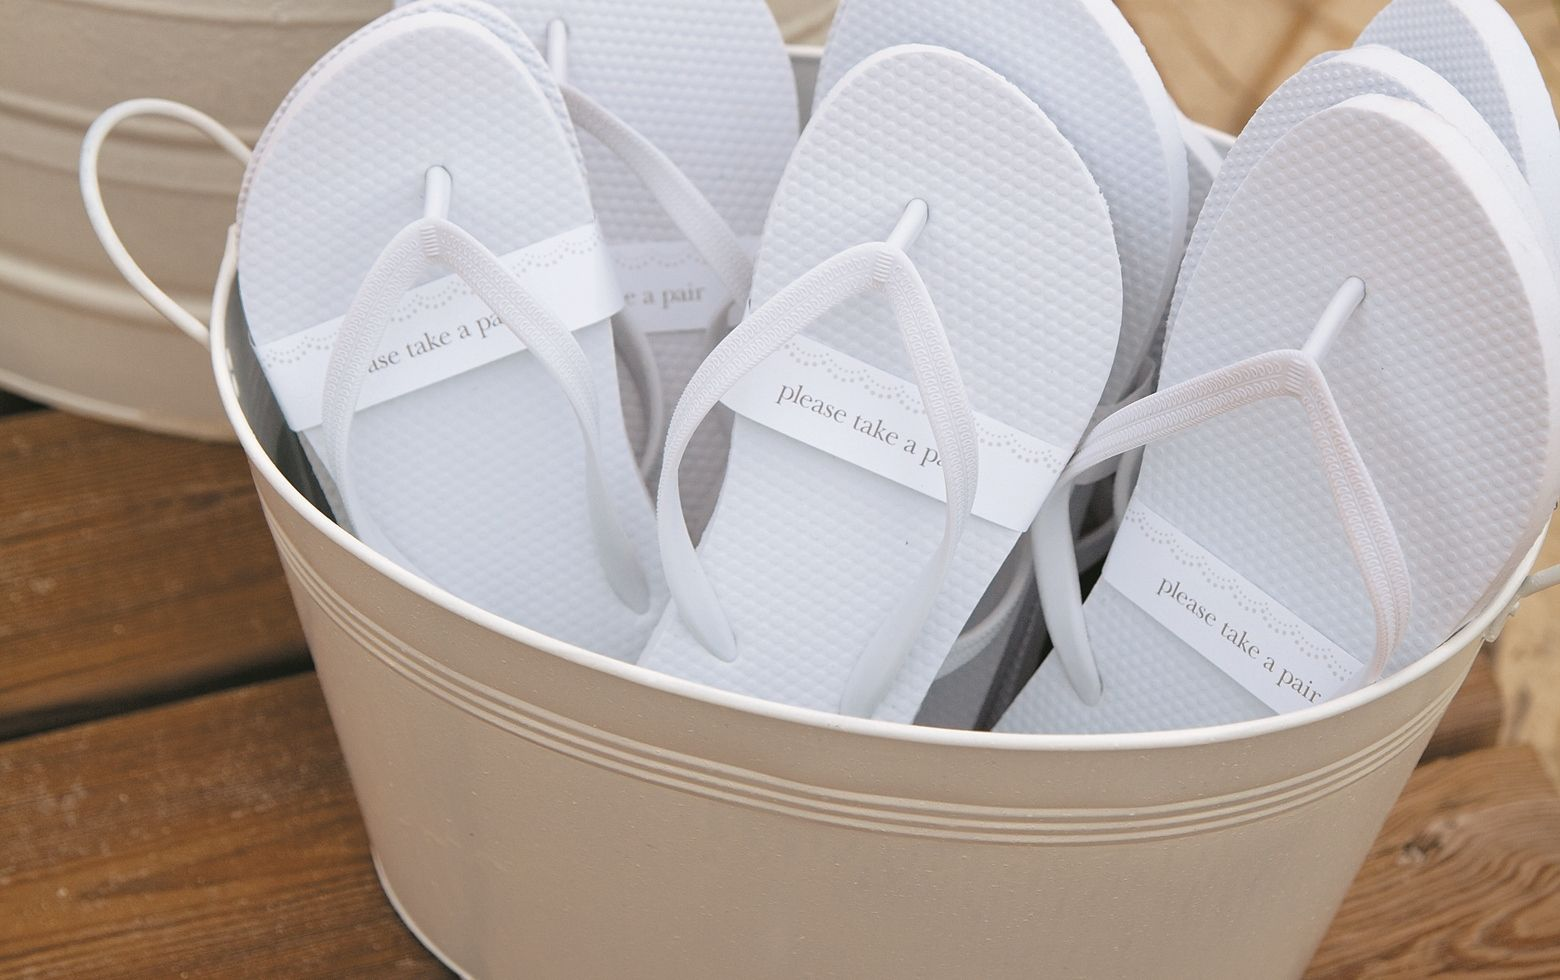 These Are Ok But I Think I D Rather Do Strappy Sandals With White Seashells On Them Wedding Sandal Wedding Flip Flops Blue Wedding Sandals Flip Flop Basket